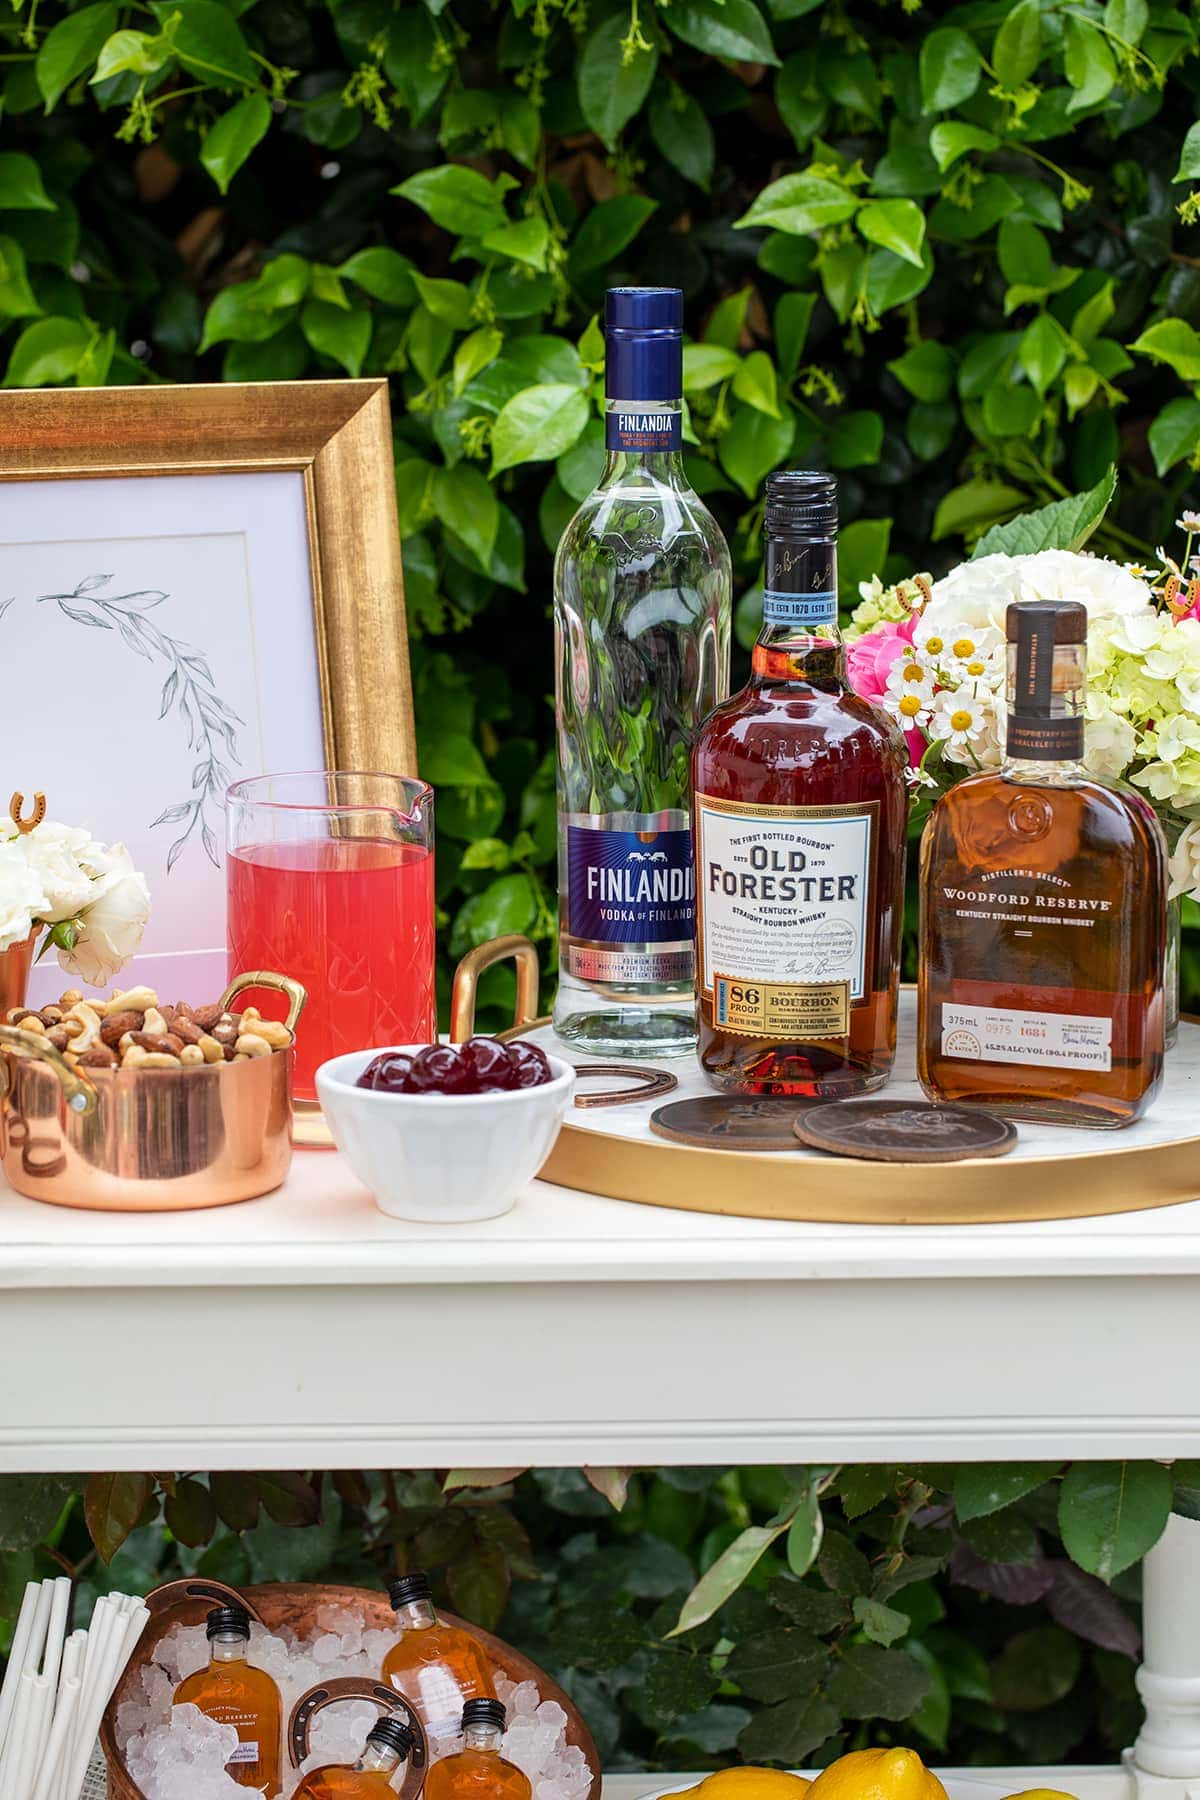 Three classic cocktails you can make at home to celebrate the Kentucky Derby.